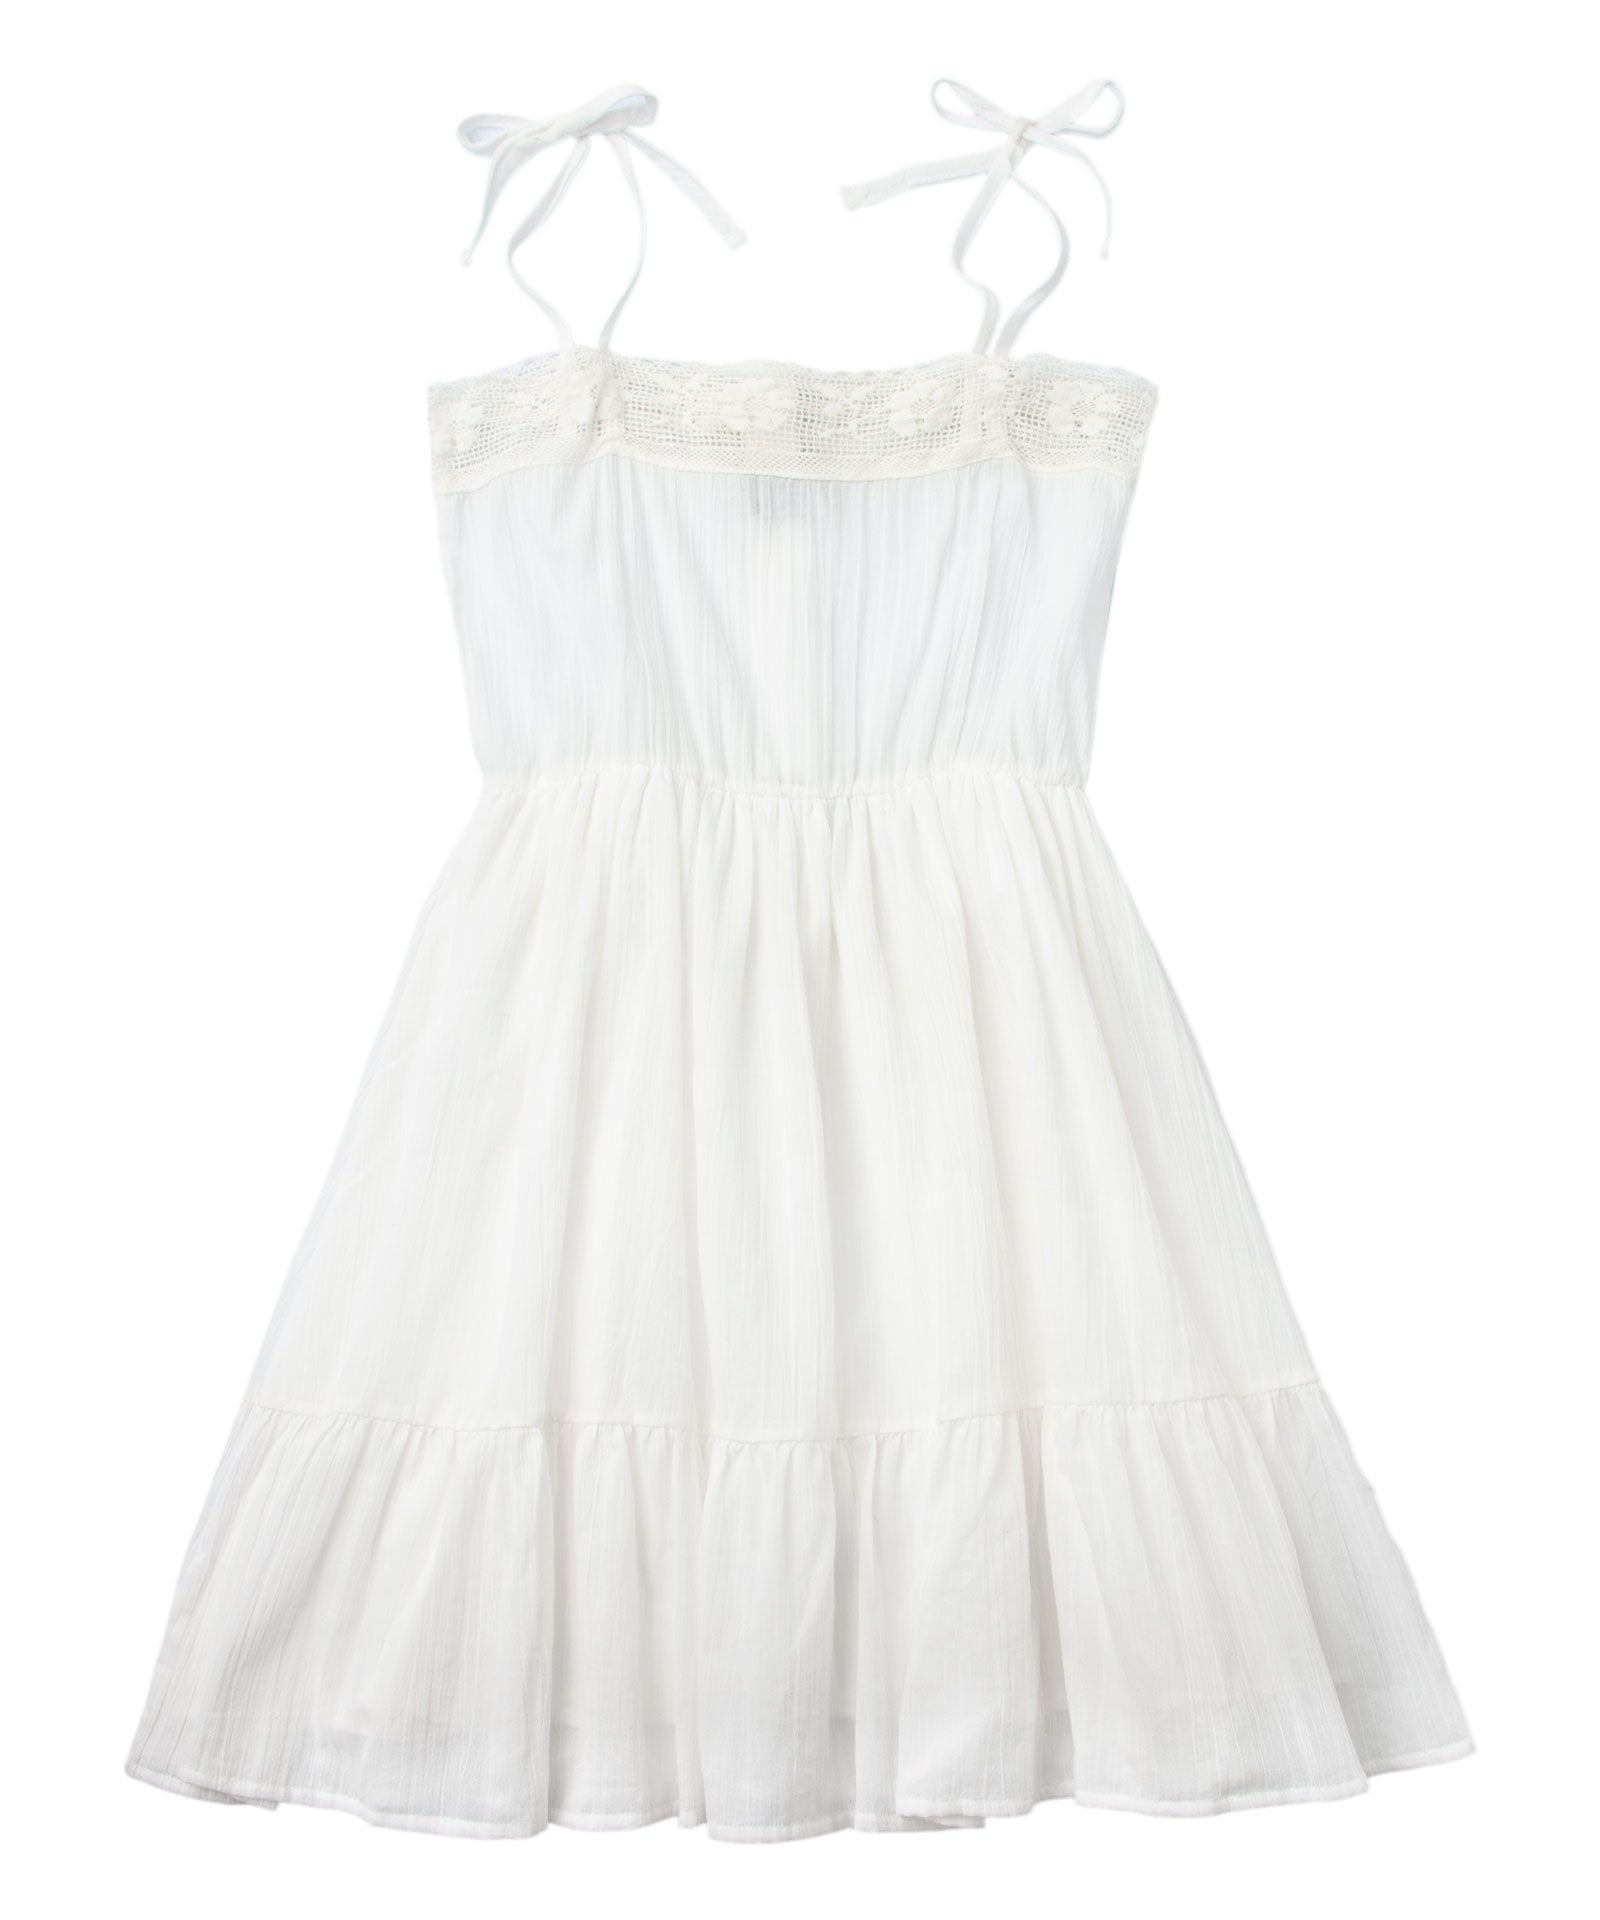 Tocoto Vintage Lace Dress - Off White